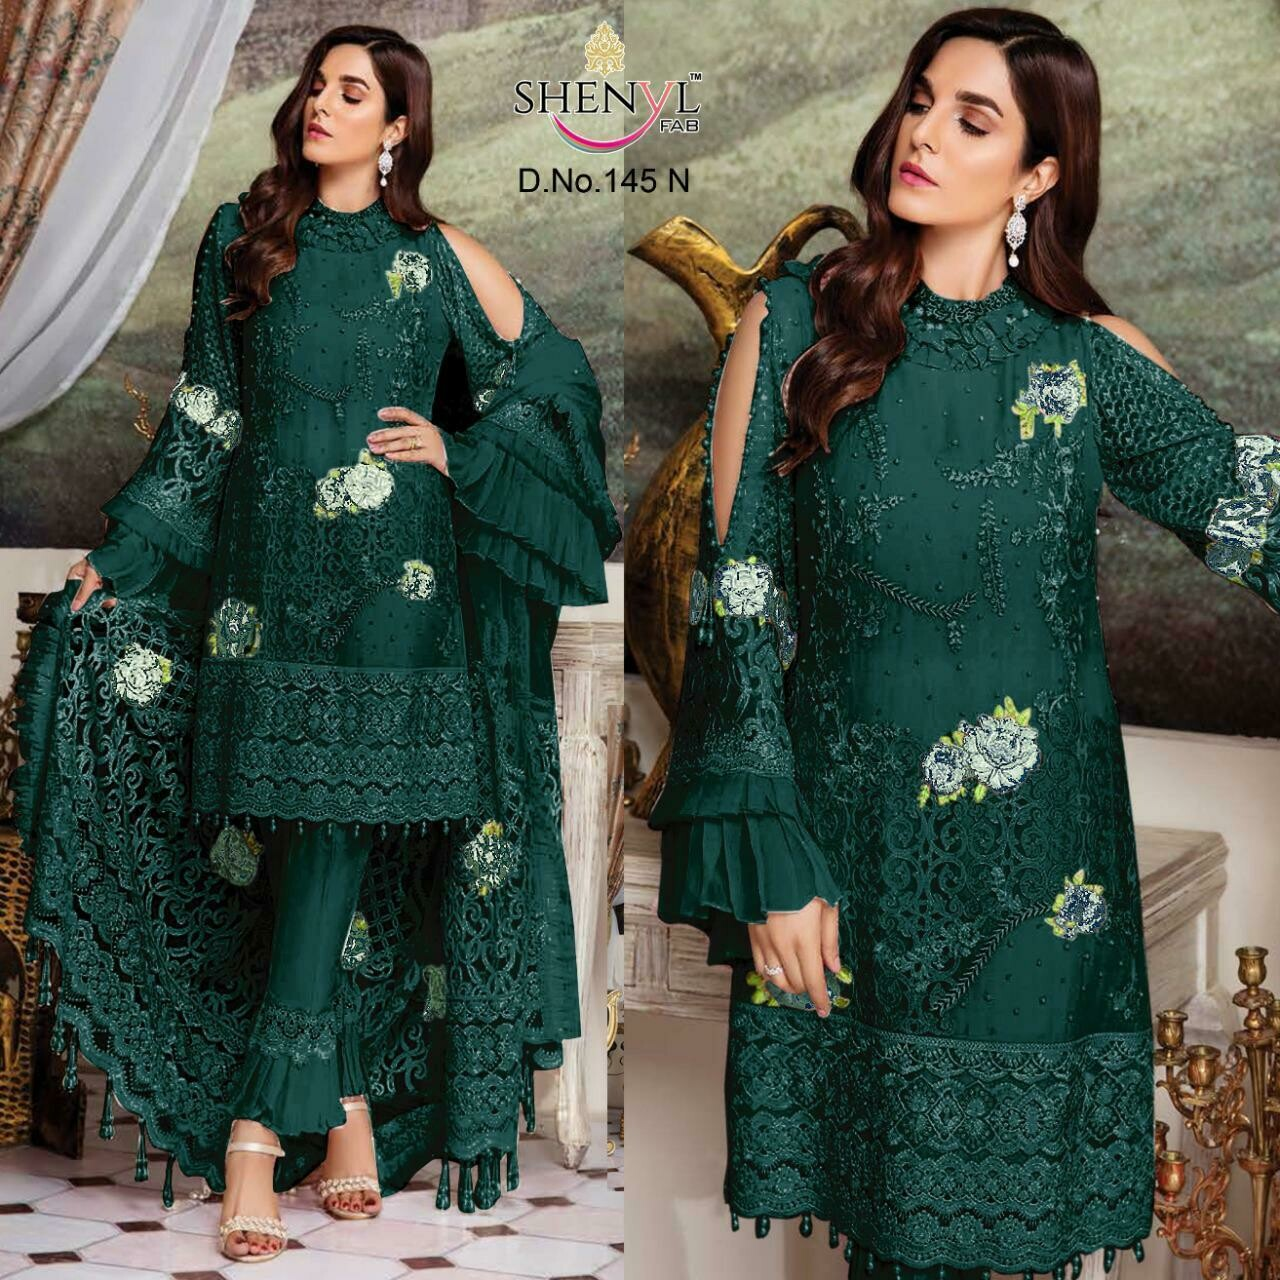 shenyl-fab-shenyl-dn-145-colour-catalog-in-wholesale-rate